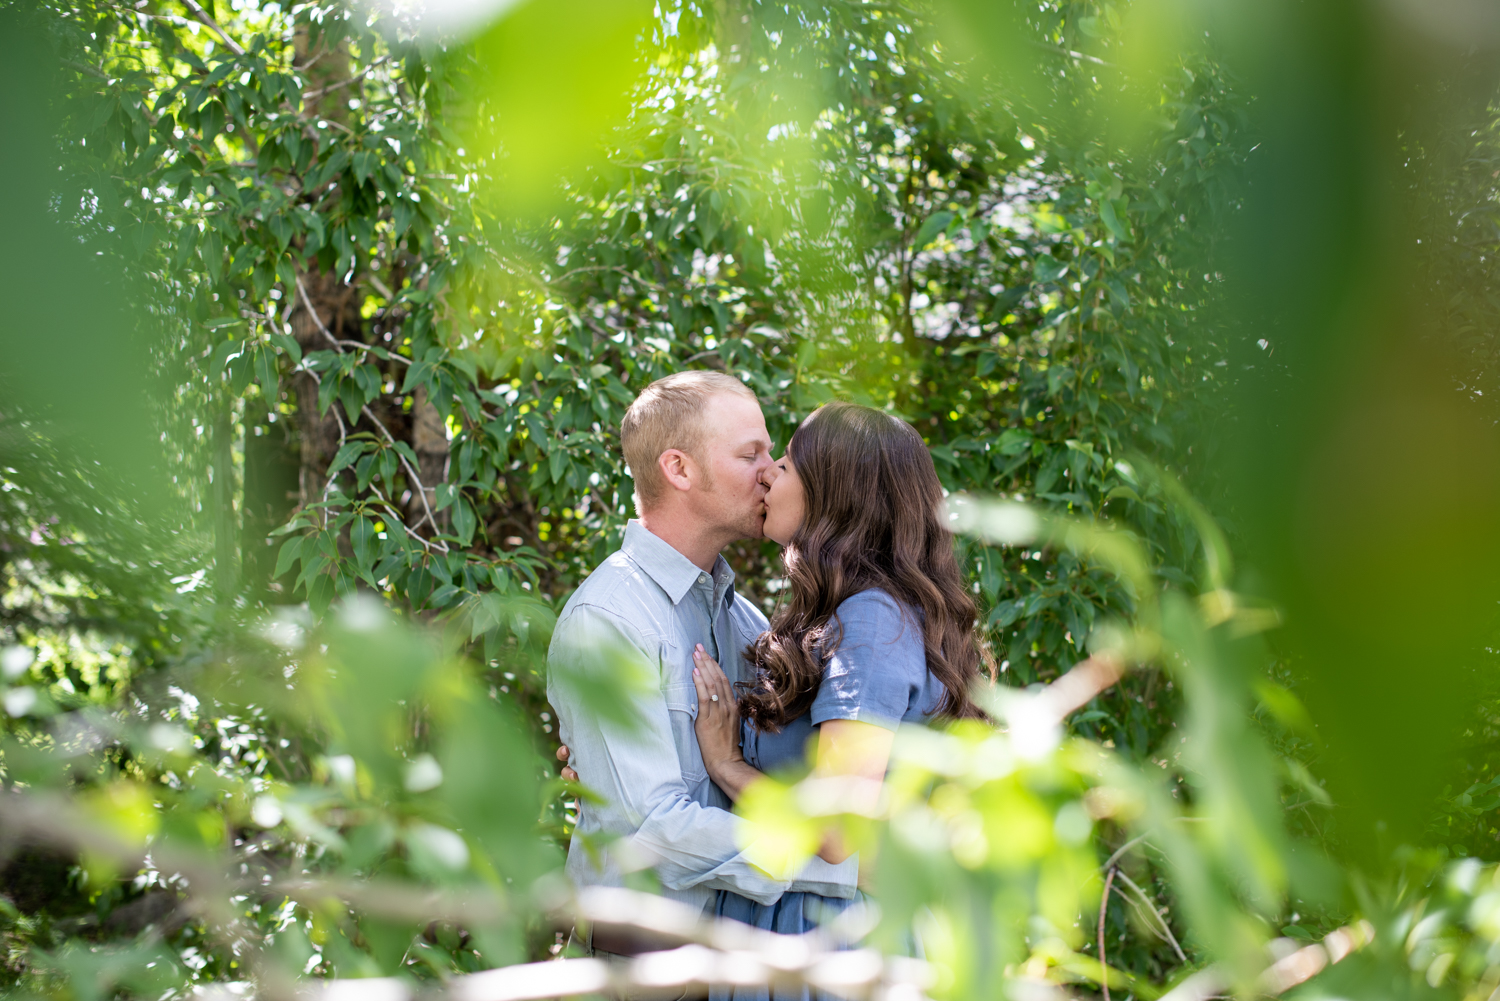 colorado-engagement-photographer-meredith-amadee-photography-10.jpg